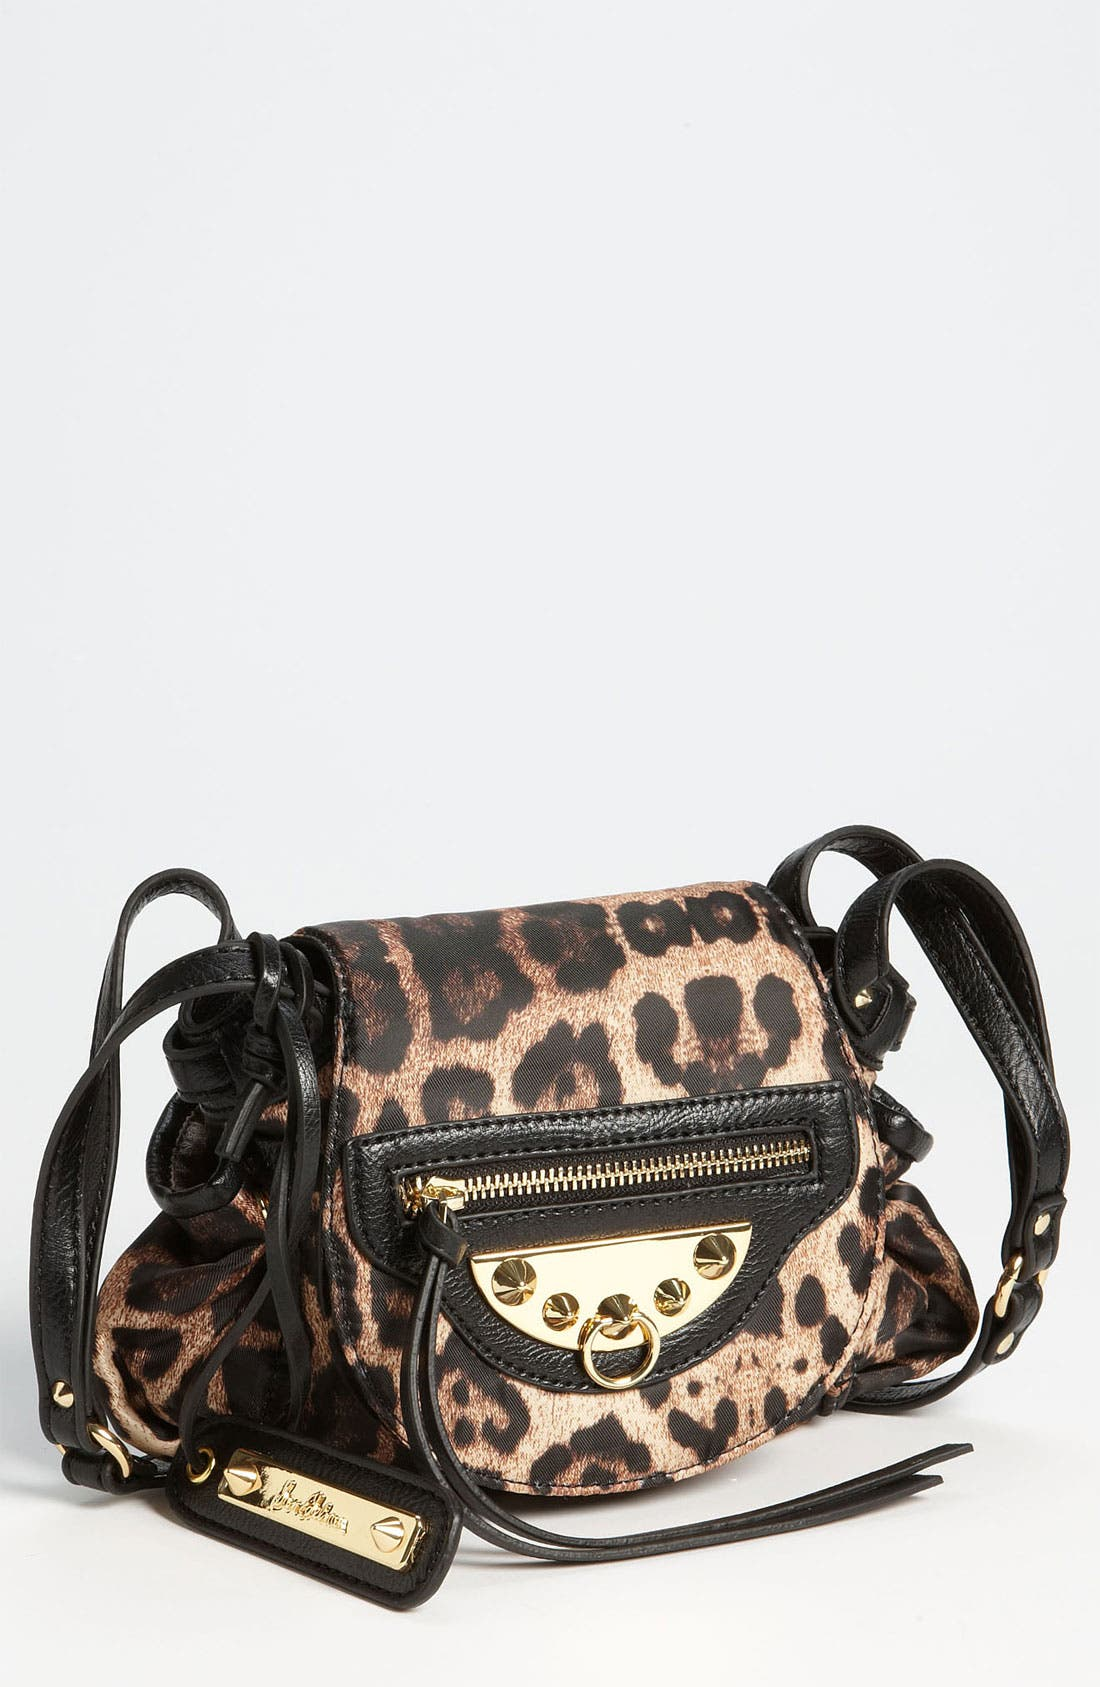 Alternate Image 1 Selected - Sam Edelman 'Maxine Mini' Crossbody Bag